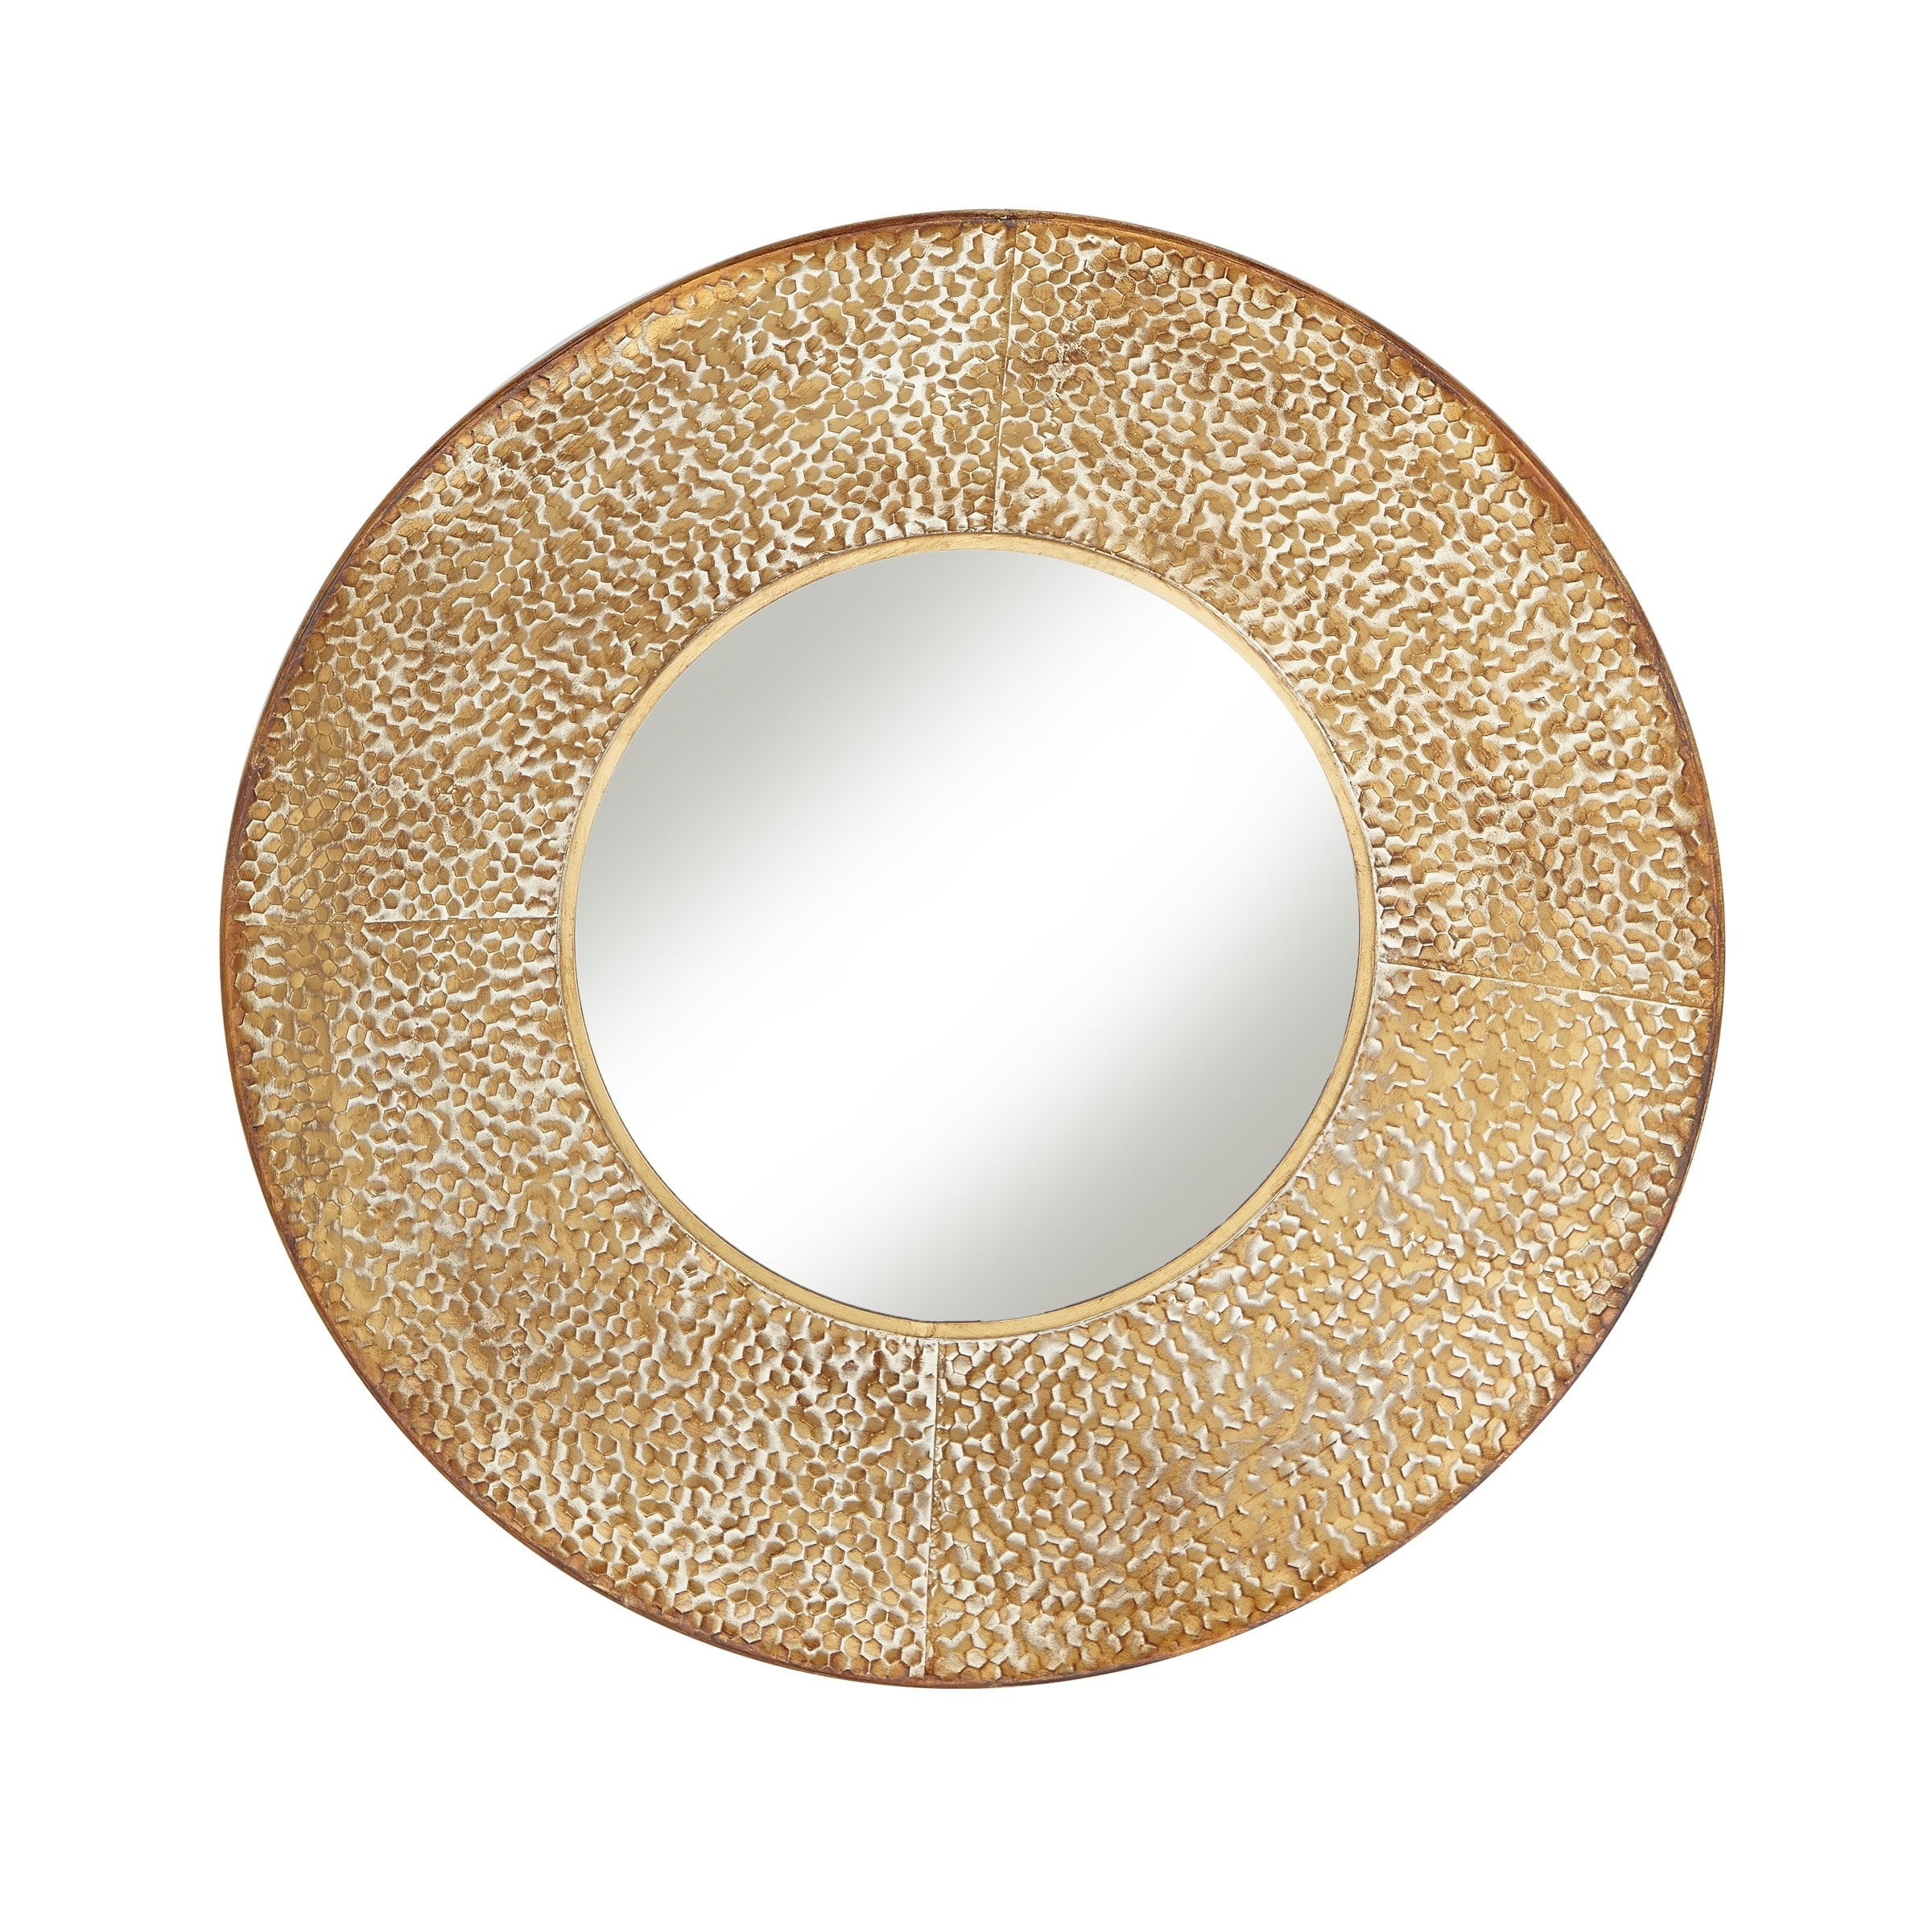 Shop Modern 32 x 32 Inch Round Wood and Iron Framed Wall Mirror ...